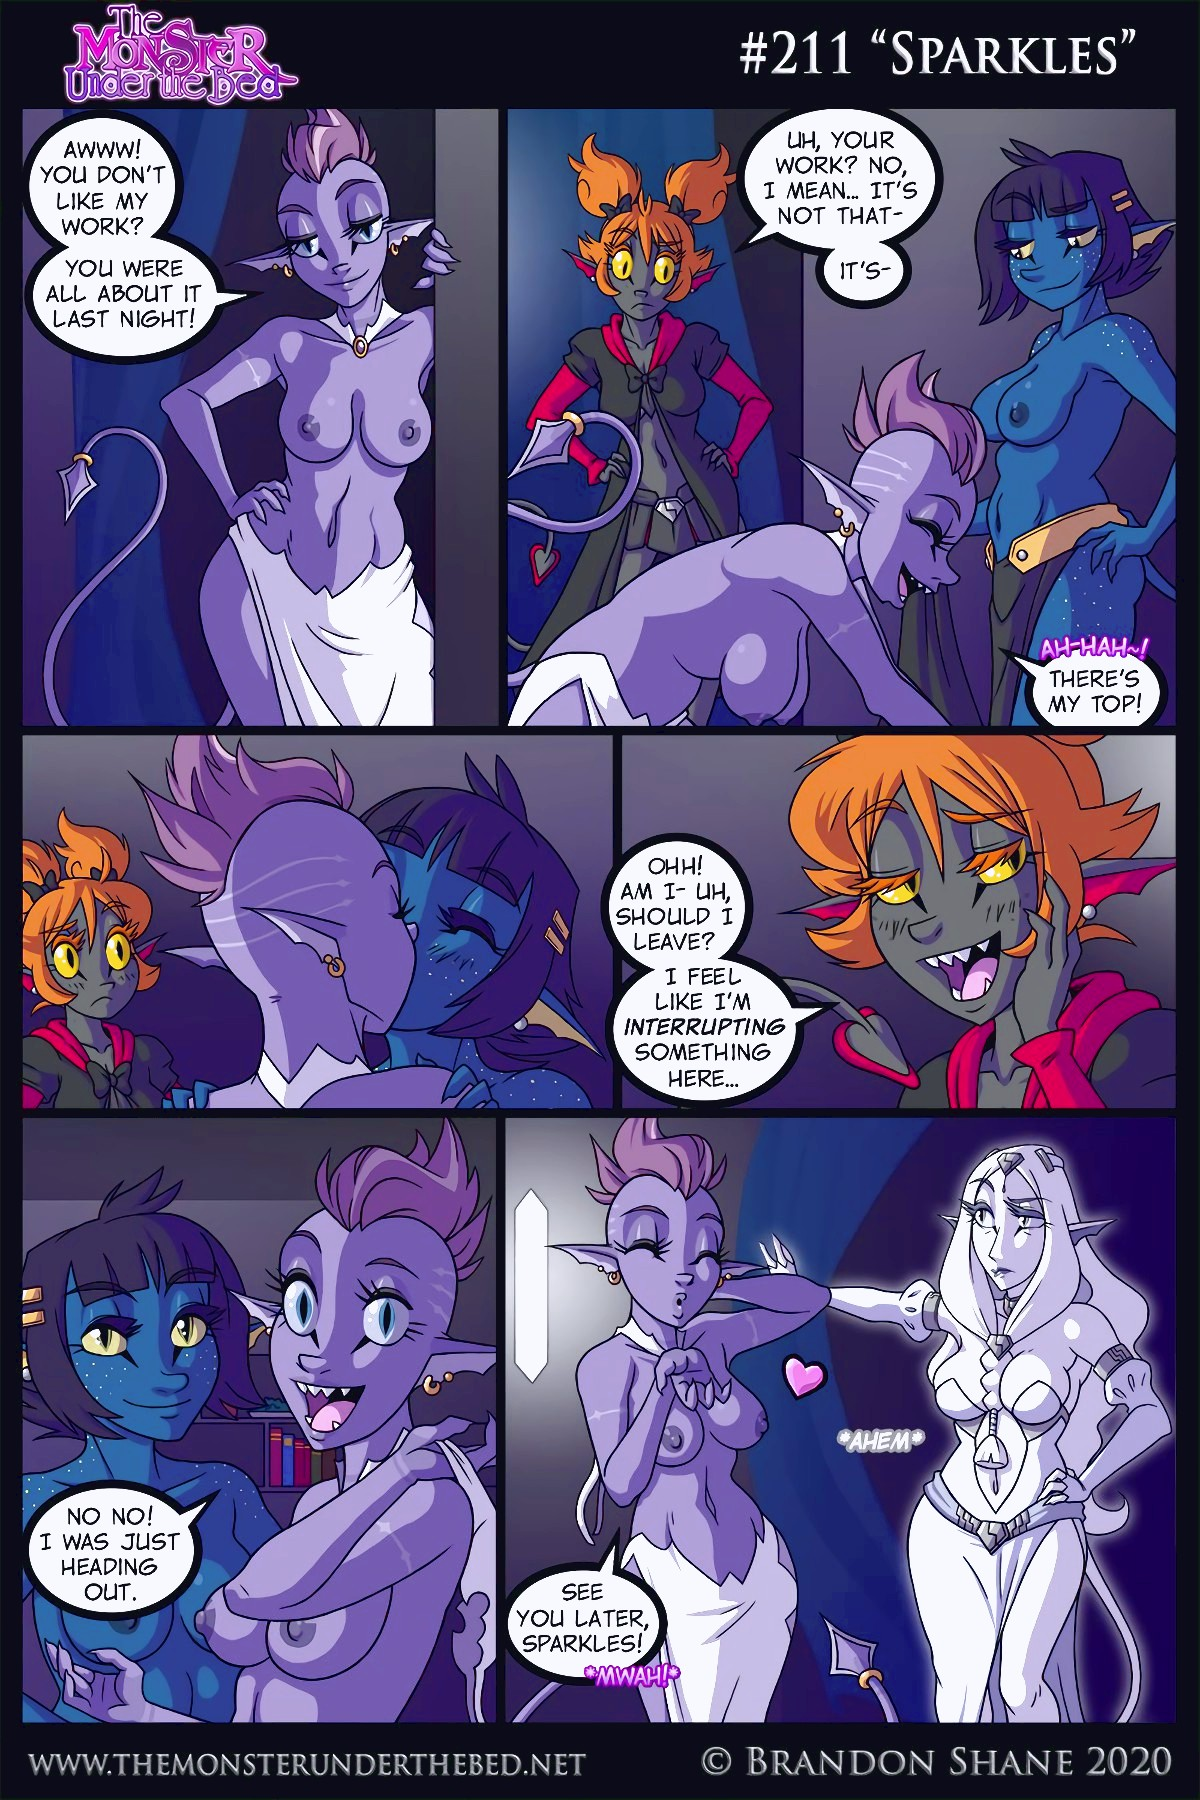 The Monster Under the Bed page 213